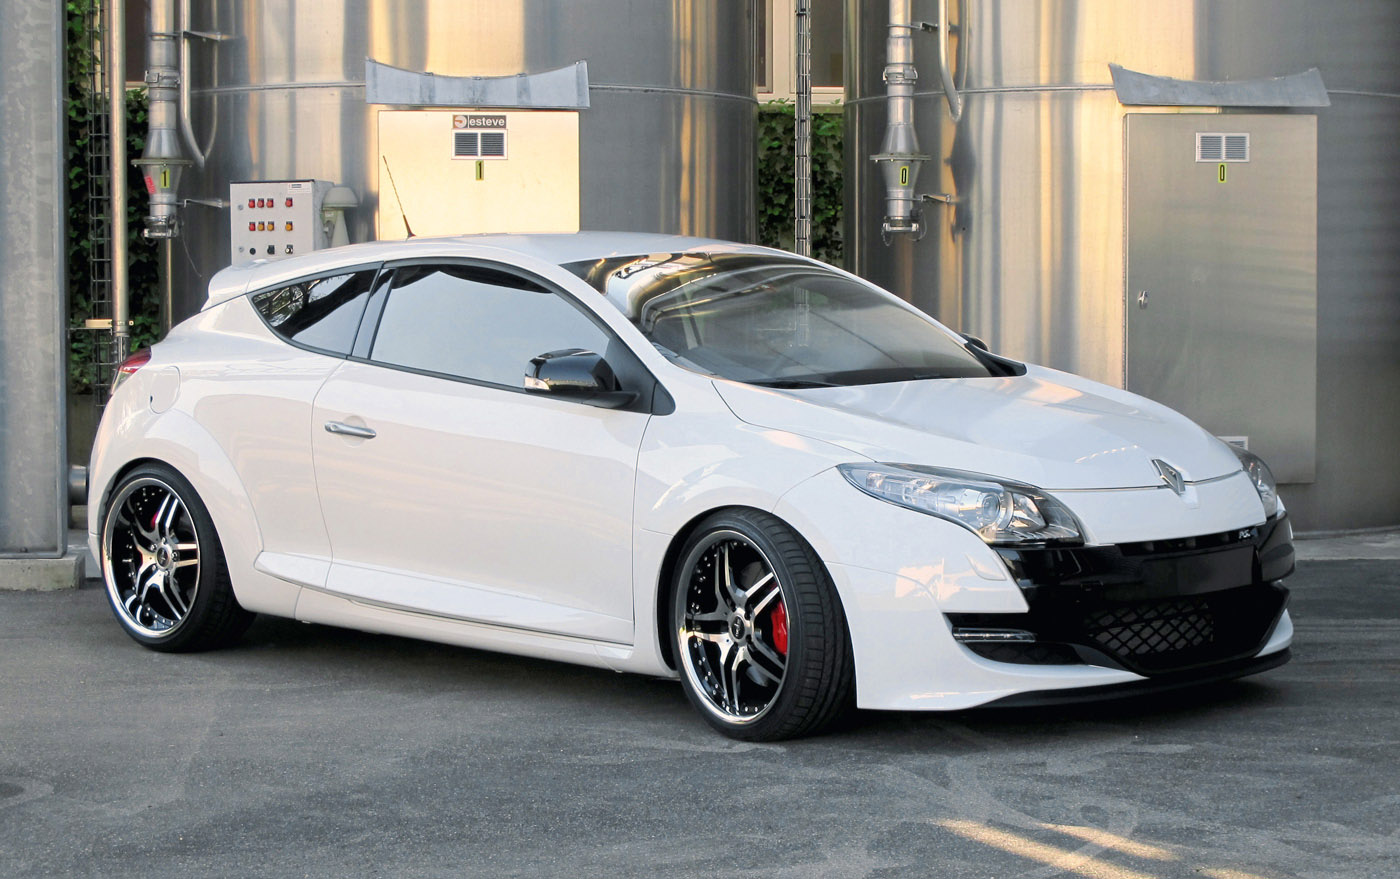 Renault Megane RS with CORNICHE VEGAS Wheels - Picture 40247